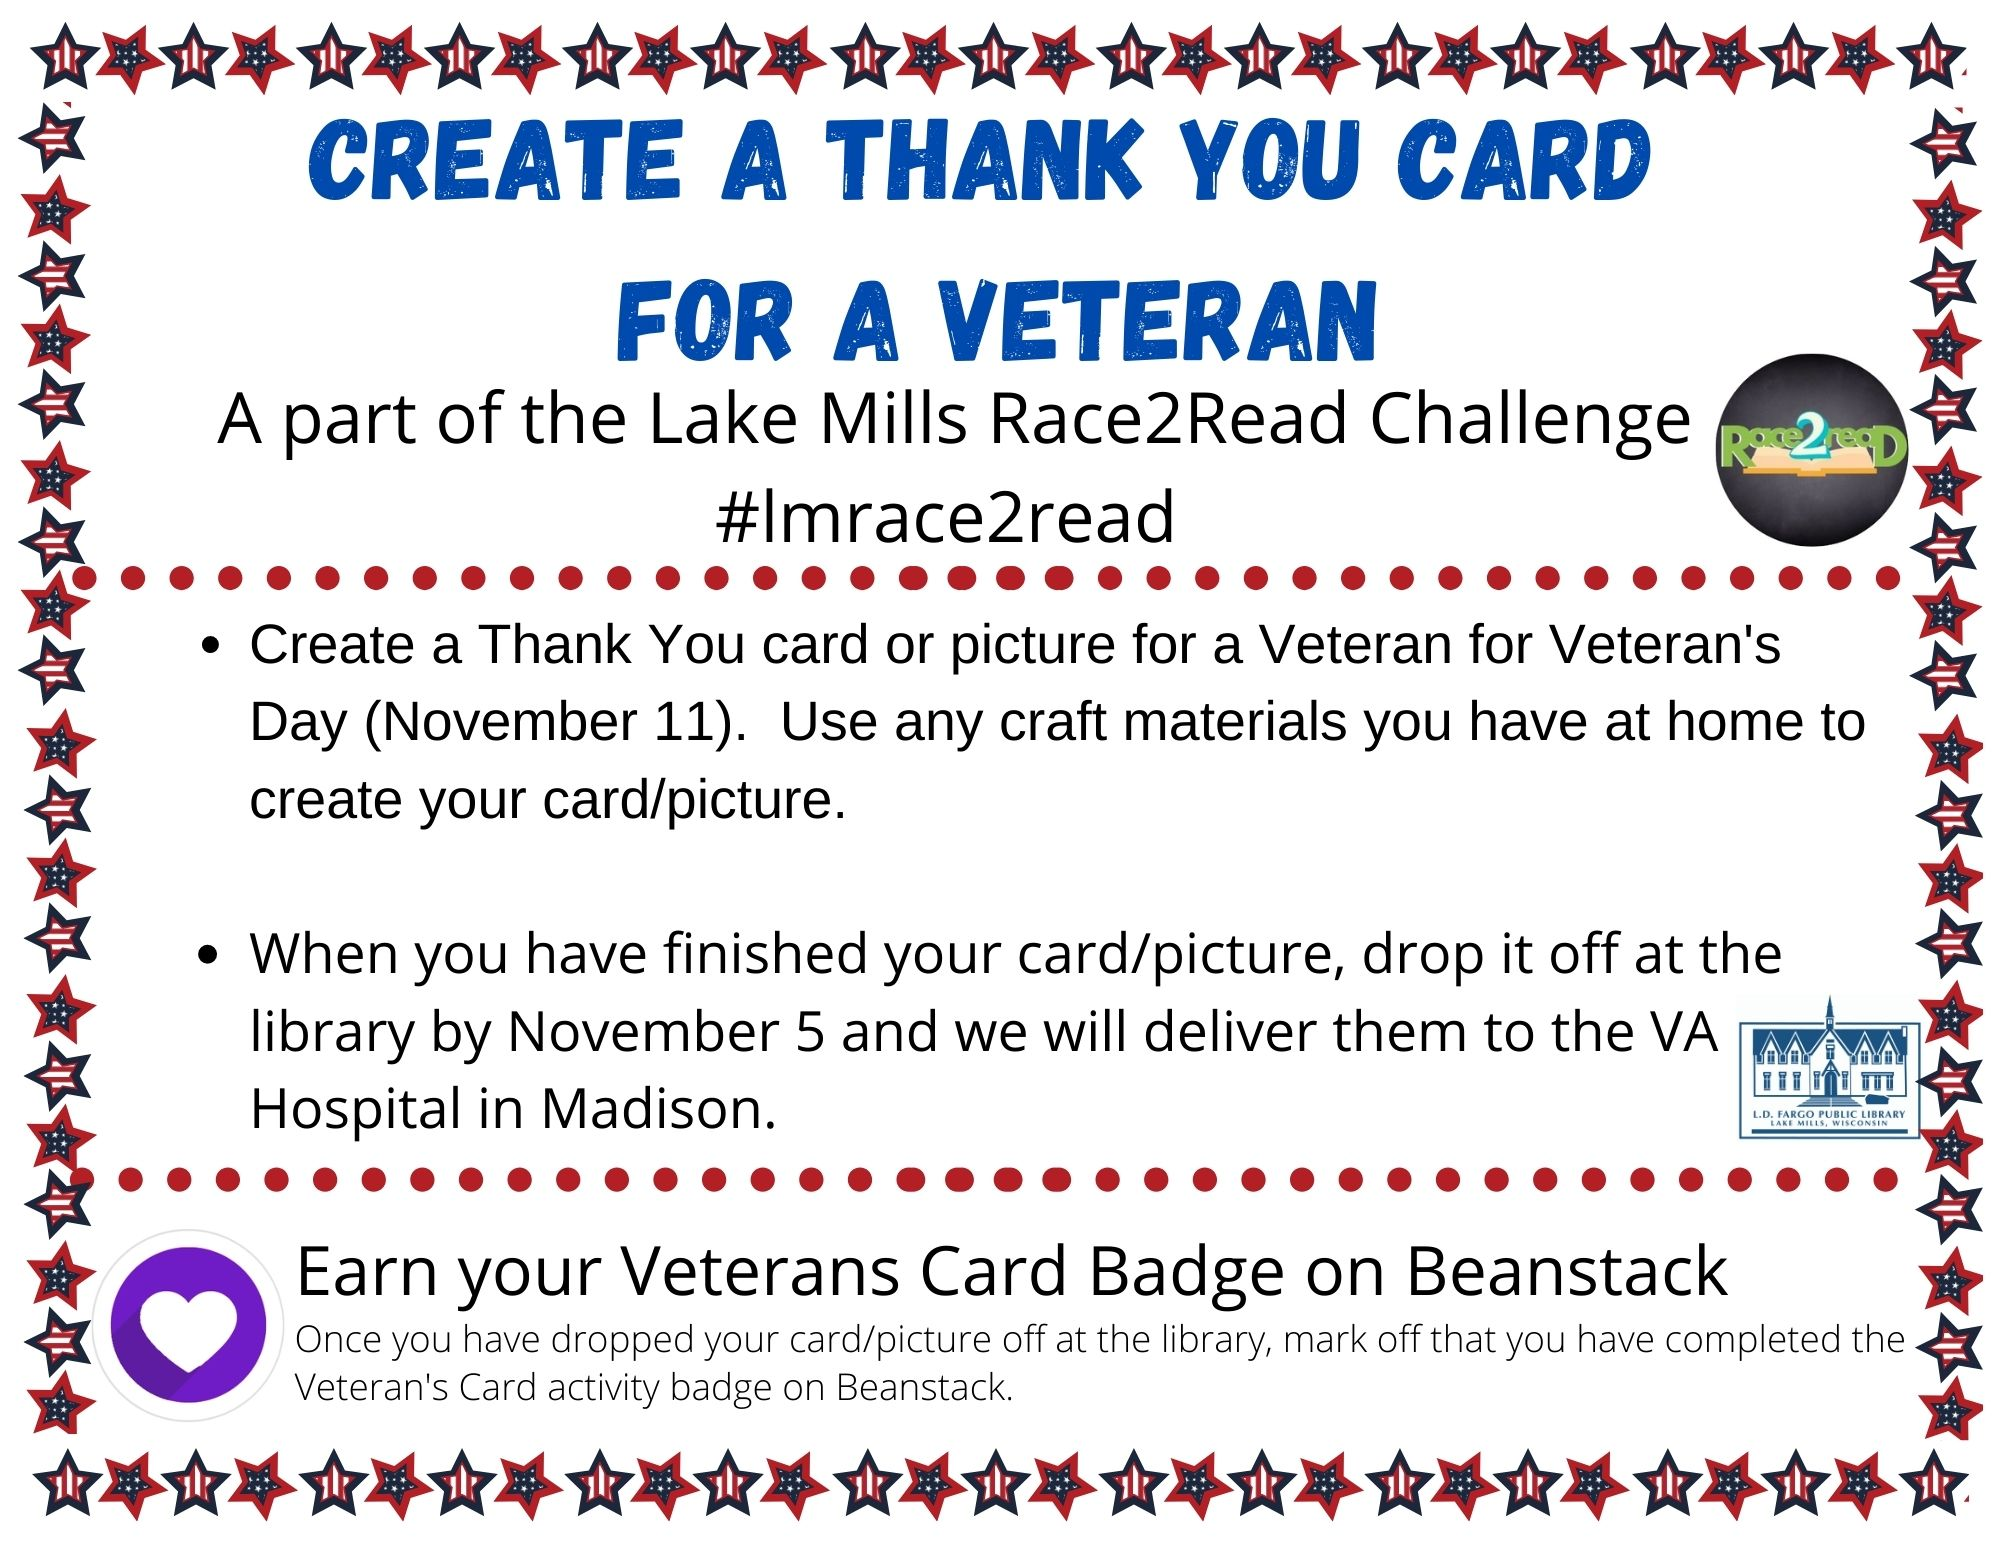 Create a Thank You card or picture for a Veteran for Veteran's Day (November 11). Use any craft materials you have at home to create your card/picture.  When you have finished your card/picture, drop it off at the library by November 5 and we will deliver them to the VA Hospital in Madison.